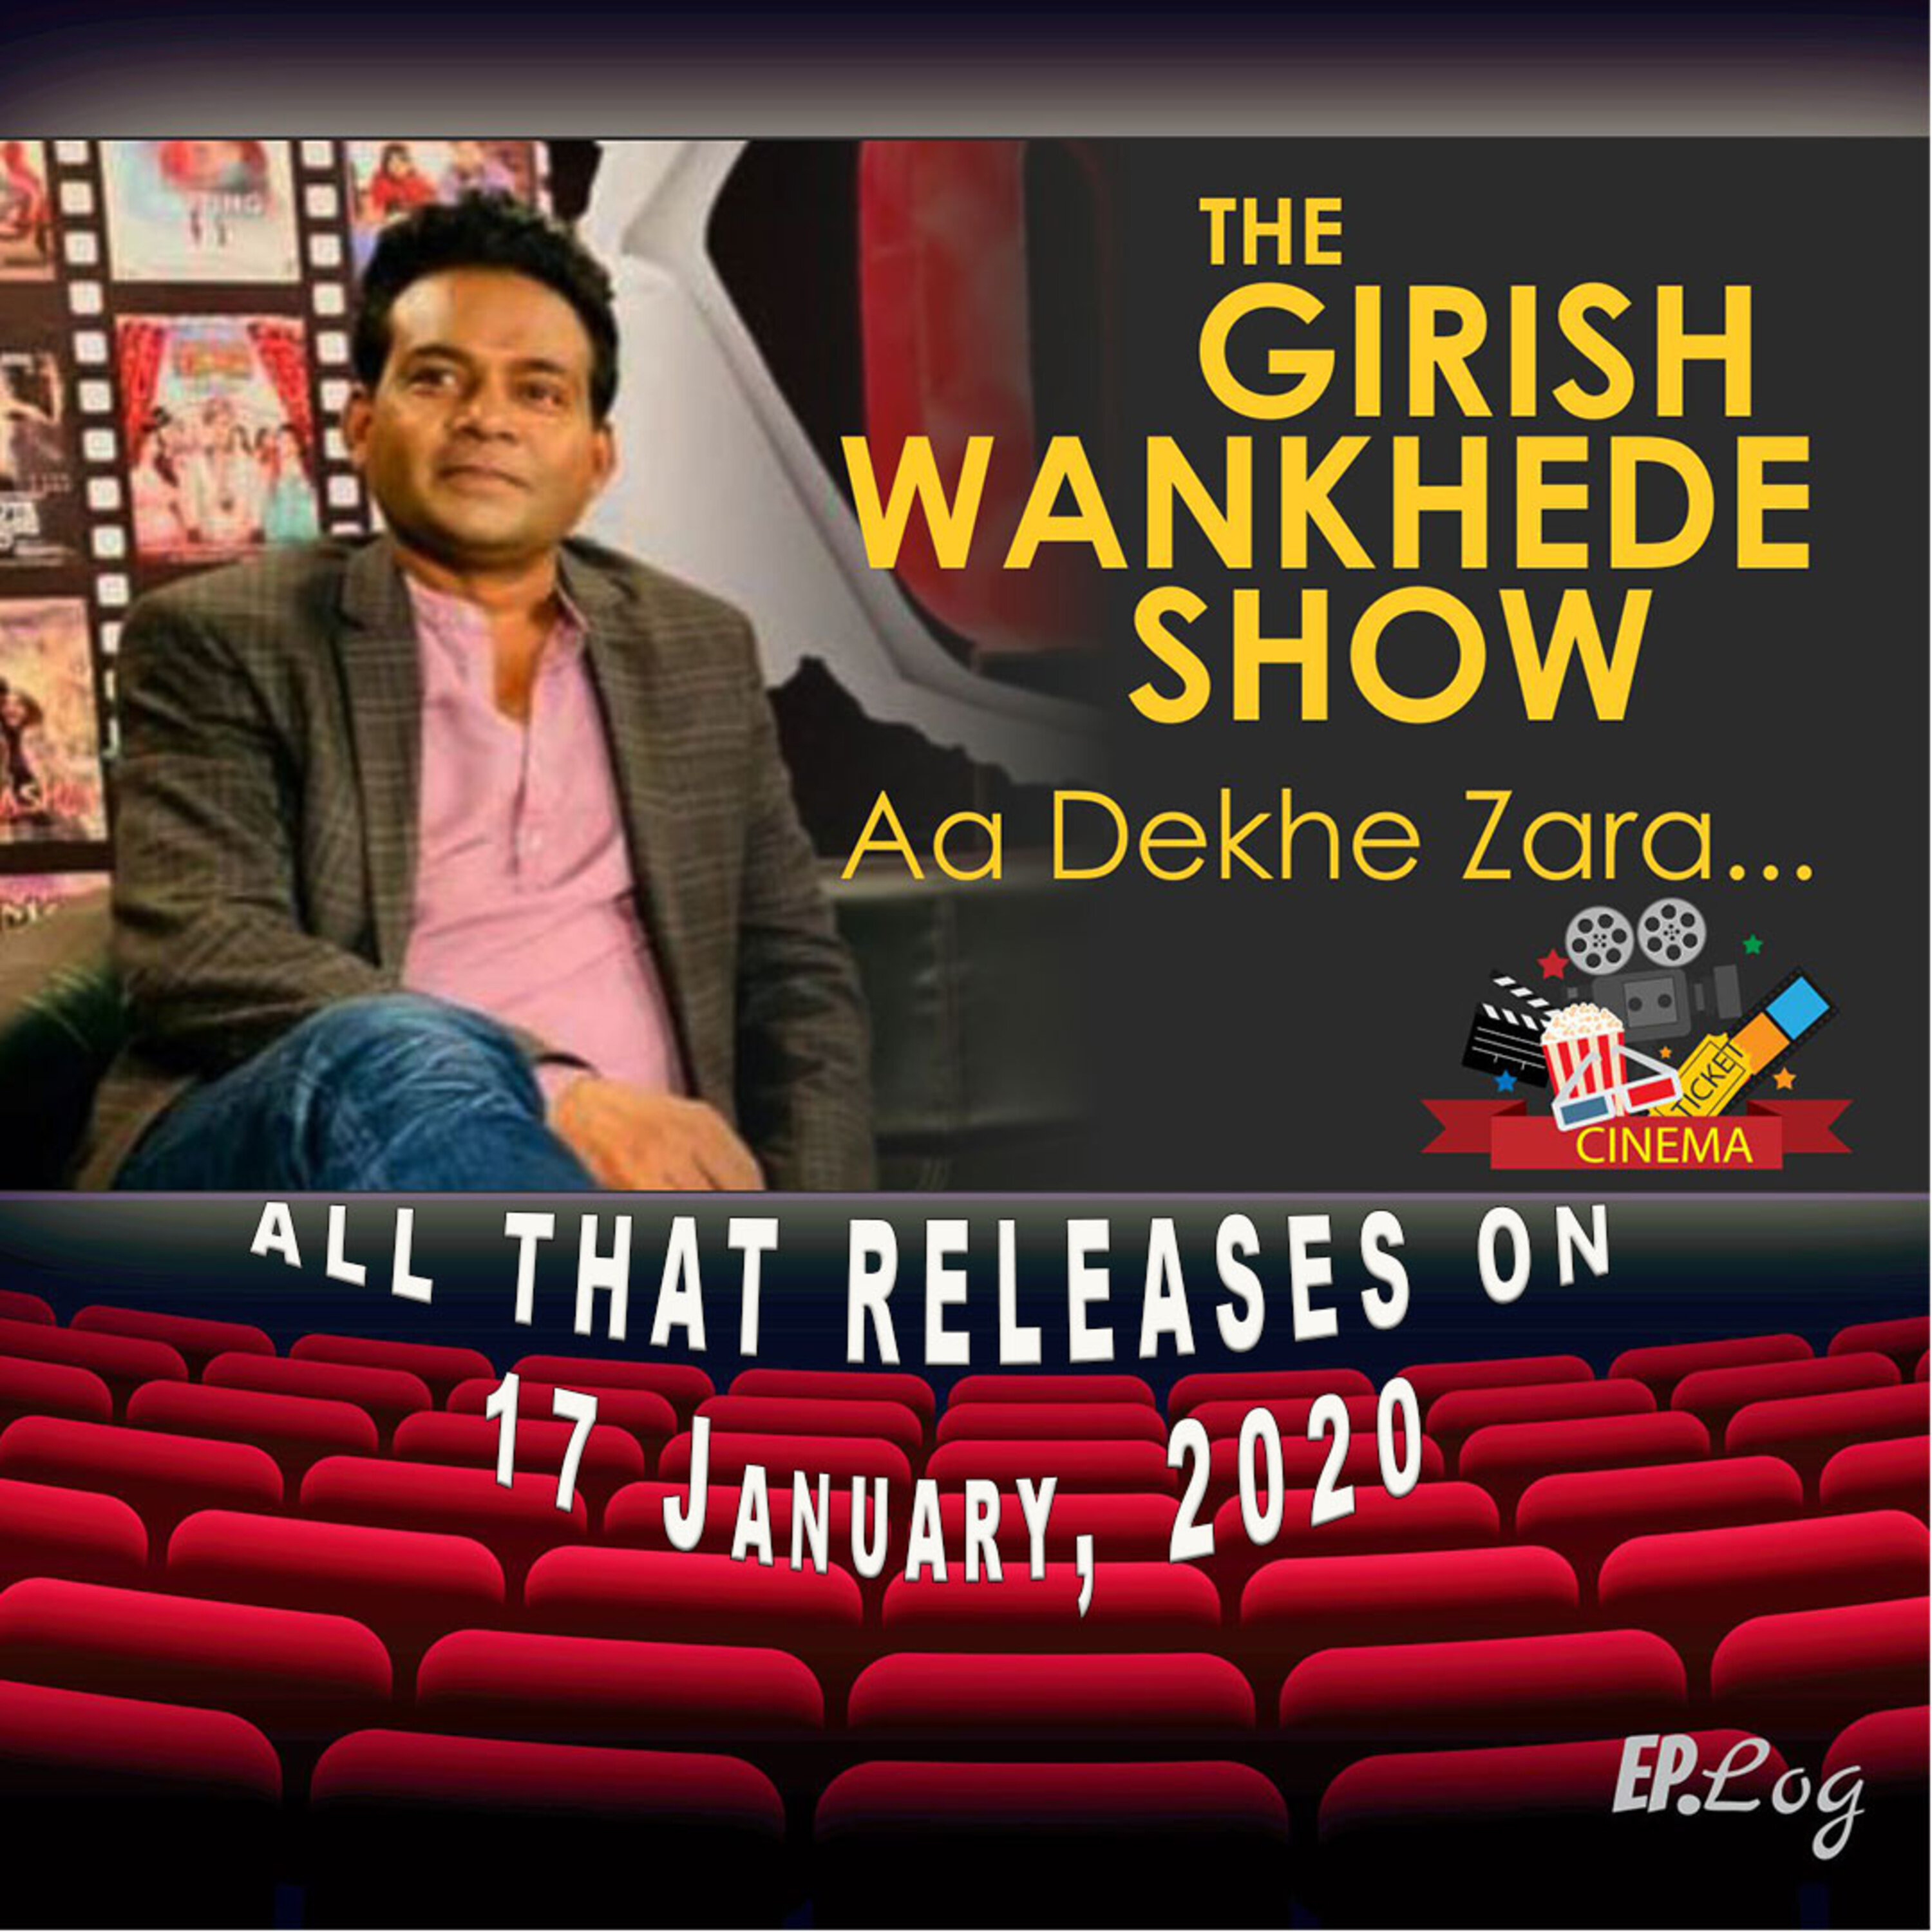 All That Releases on 17th January 2020 & Analysis